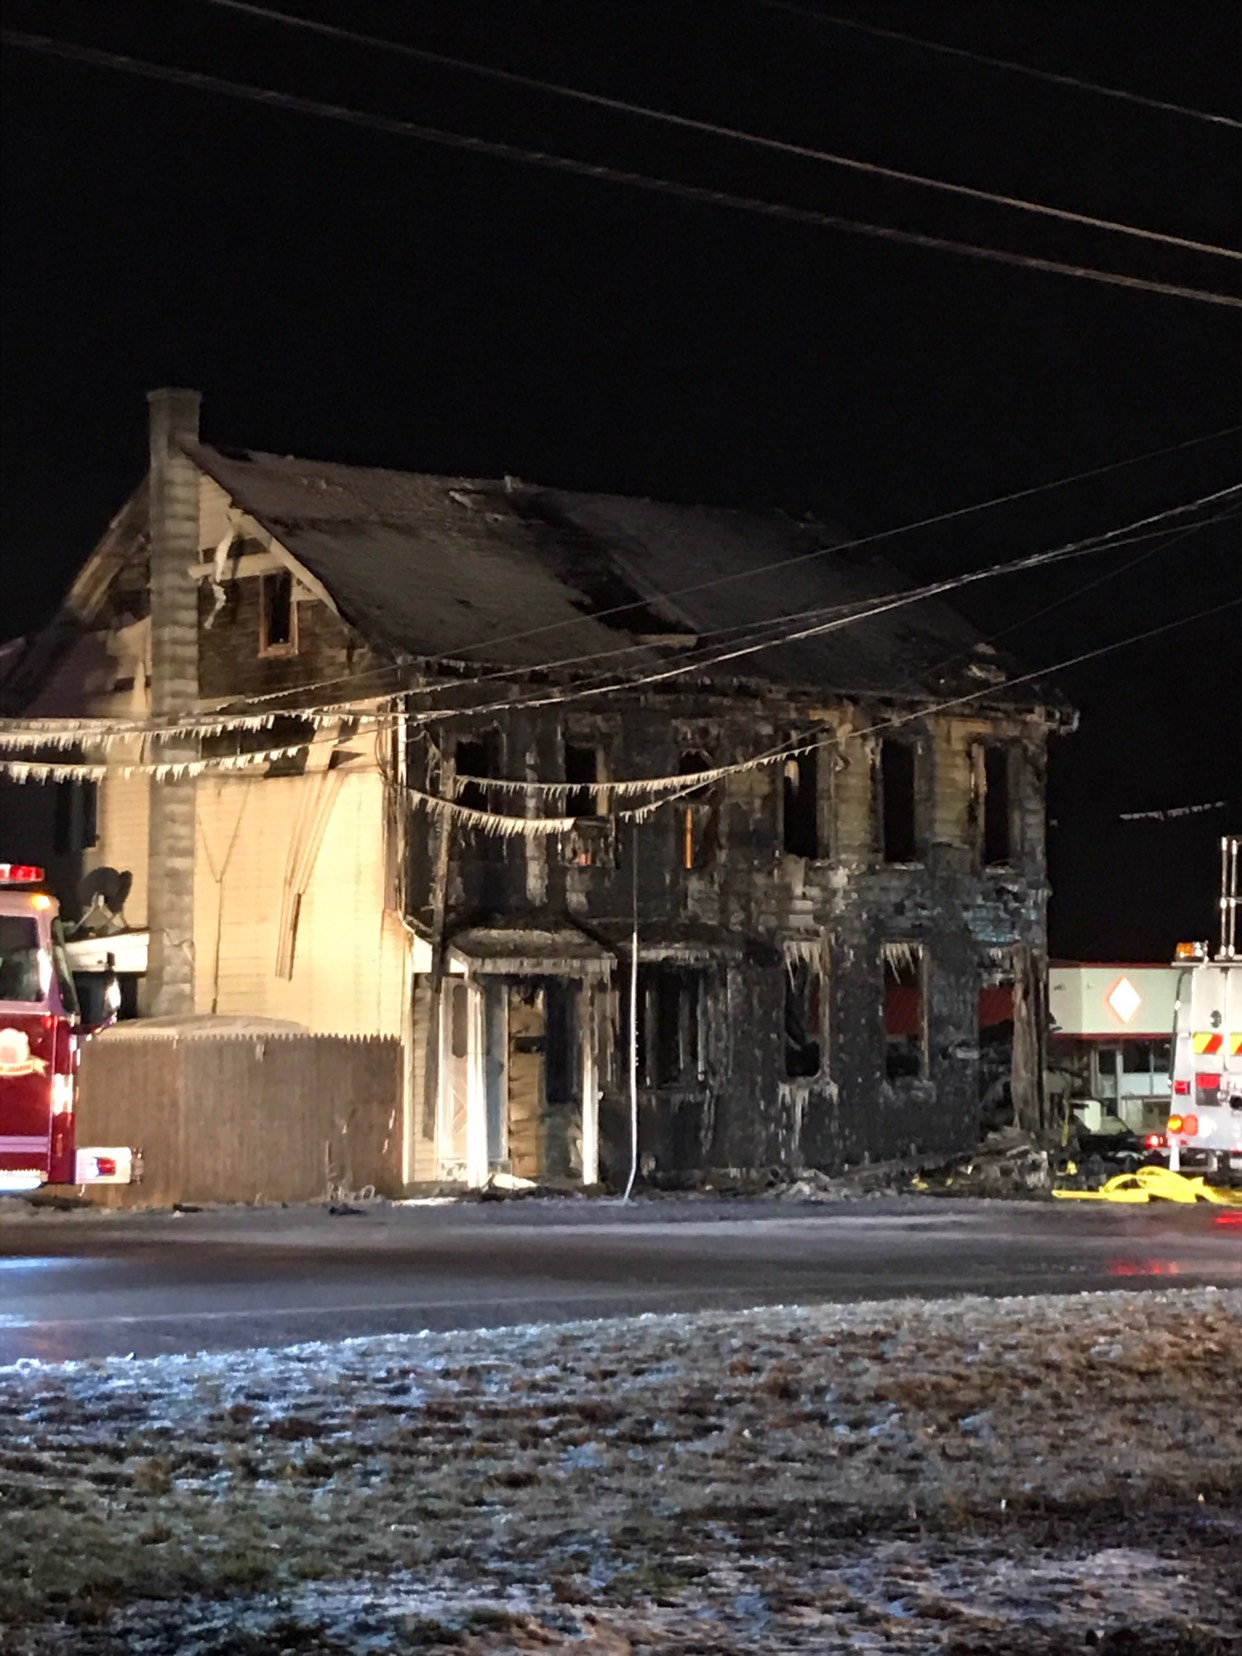 One dead after car crashes into home, sparks fire